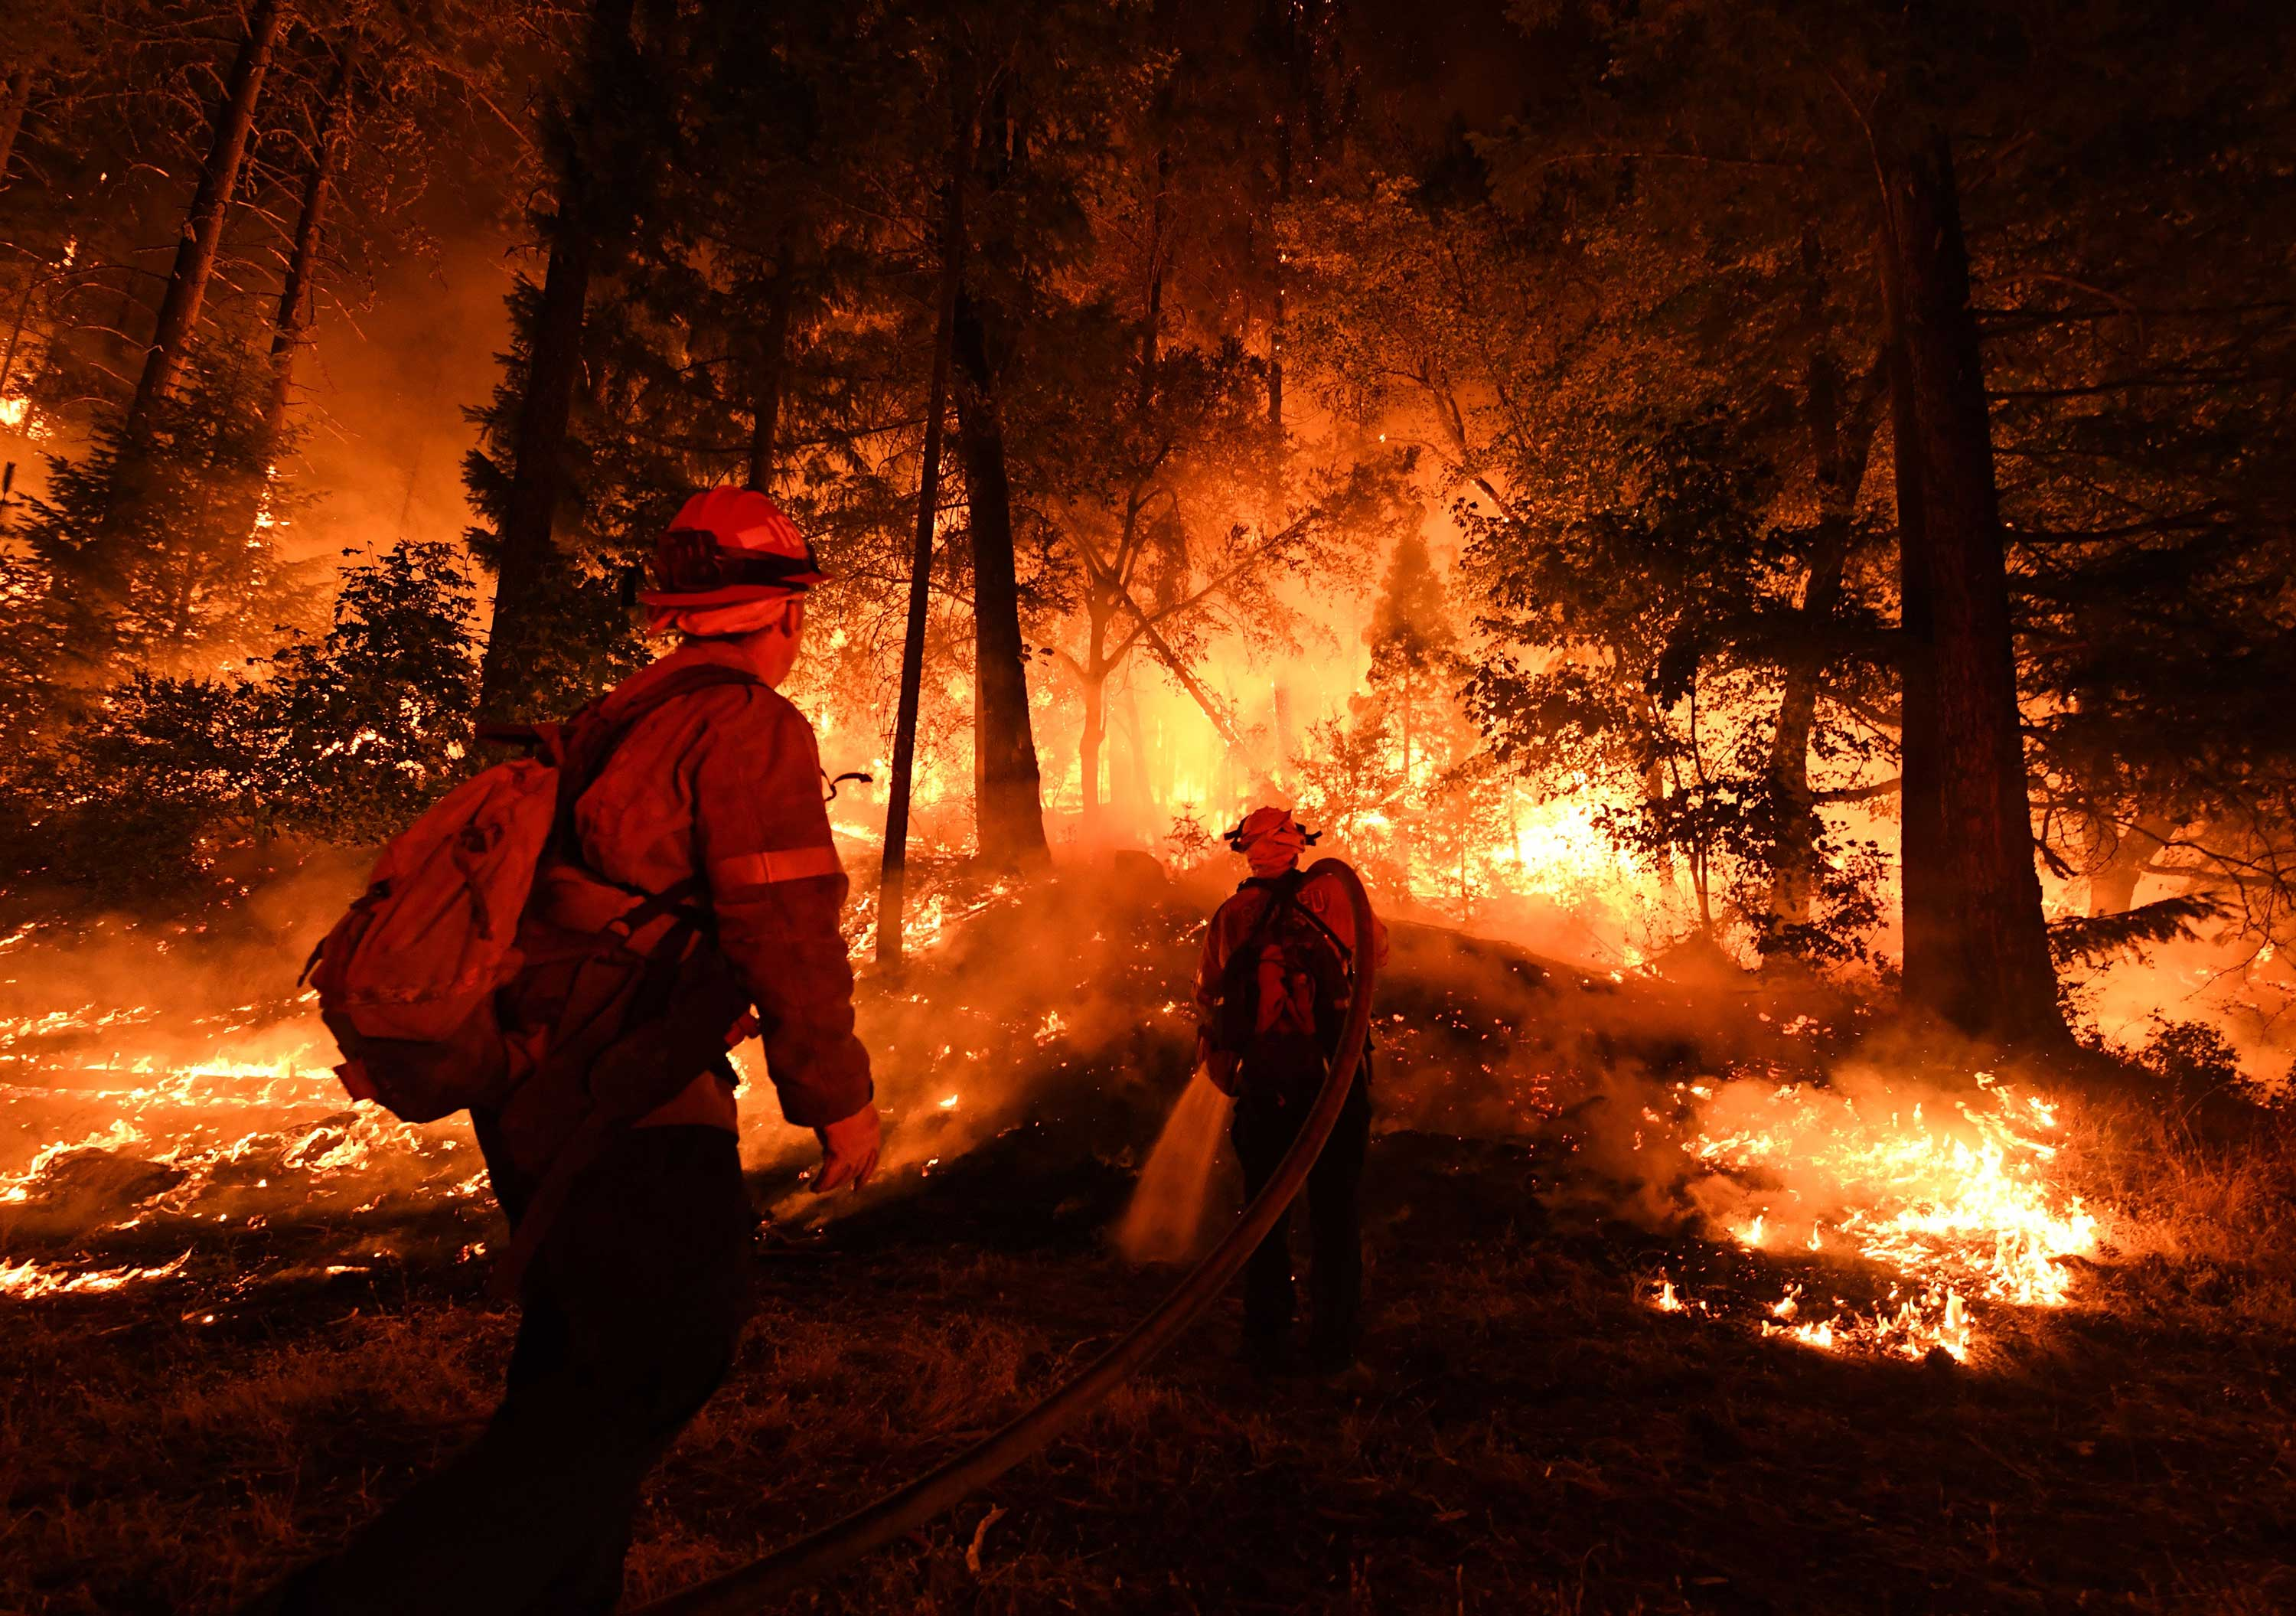 "<div class=""meta image-caption""><div class=""origin-logo origin-image none""><span>none</span></div><span class=""caption-text"">Firefighters try to control a back burn as the Carr fire continues to spread towards the towns of Douglas City and Lewiston near Redding, California on July 31, 2018. (MARK RALSTON/AFP/Getty Images)</span></div>"